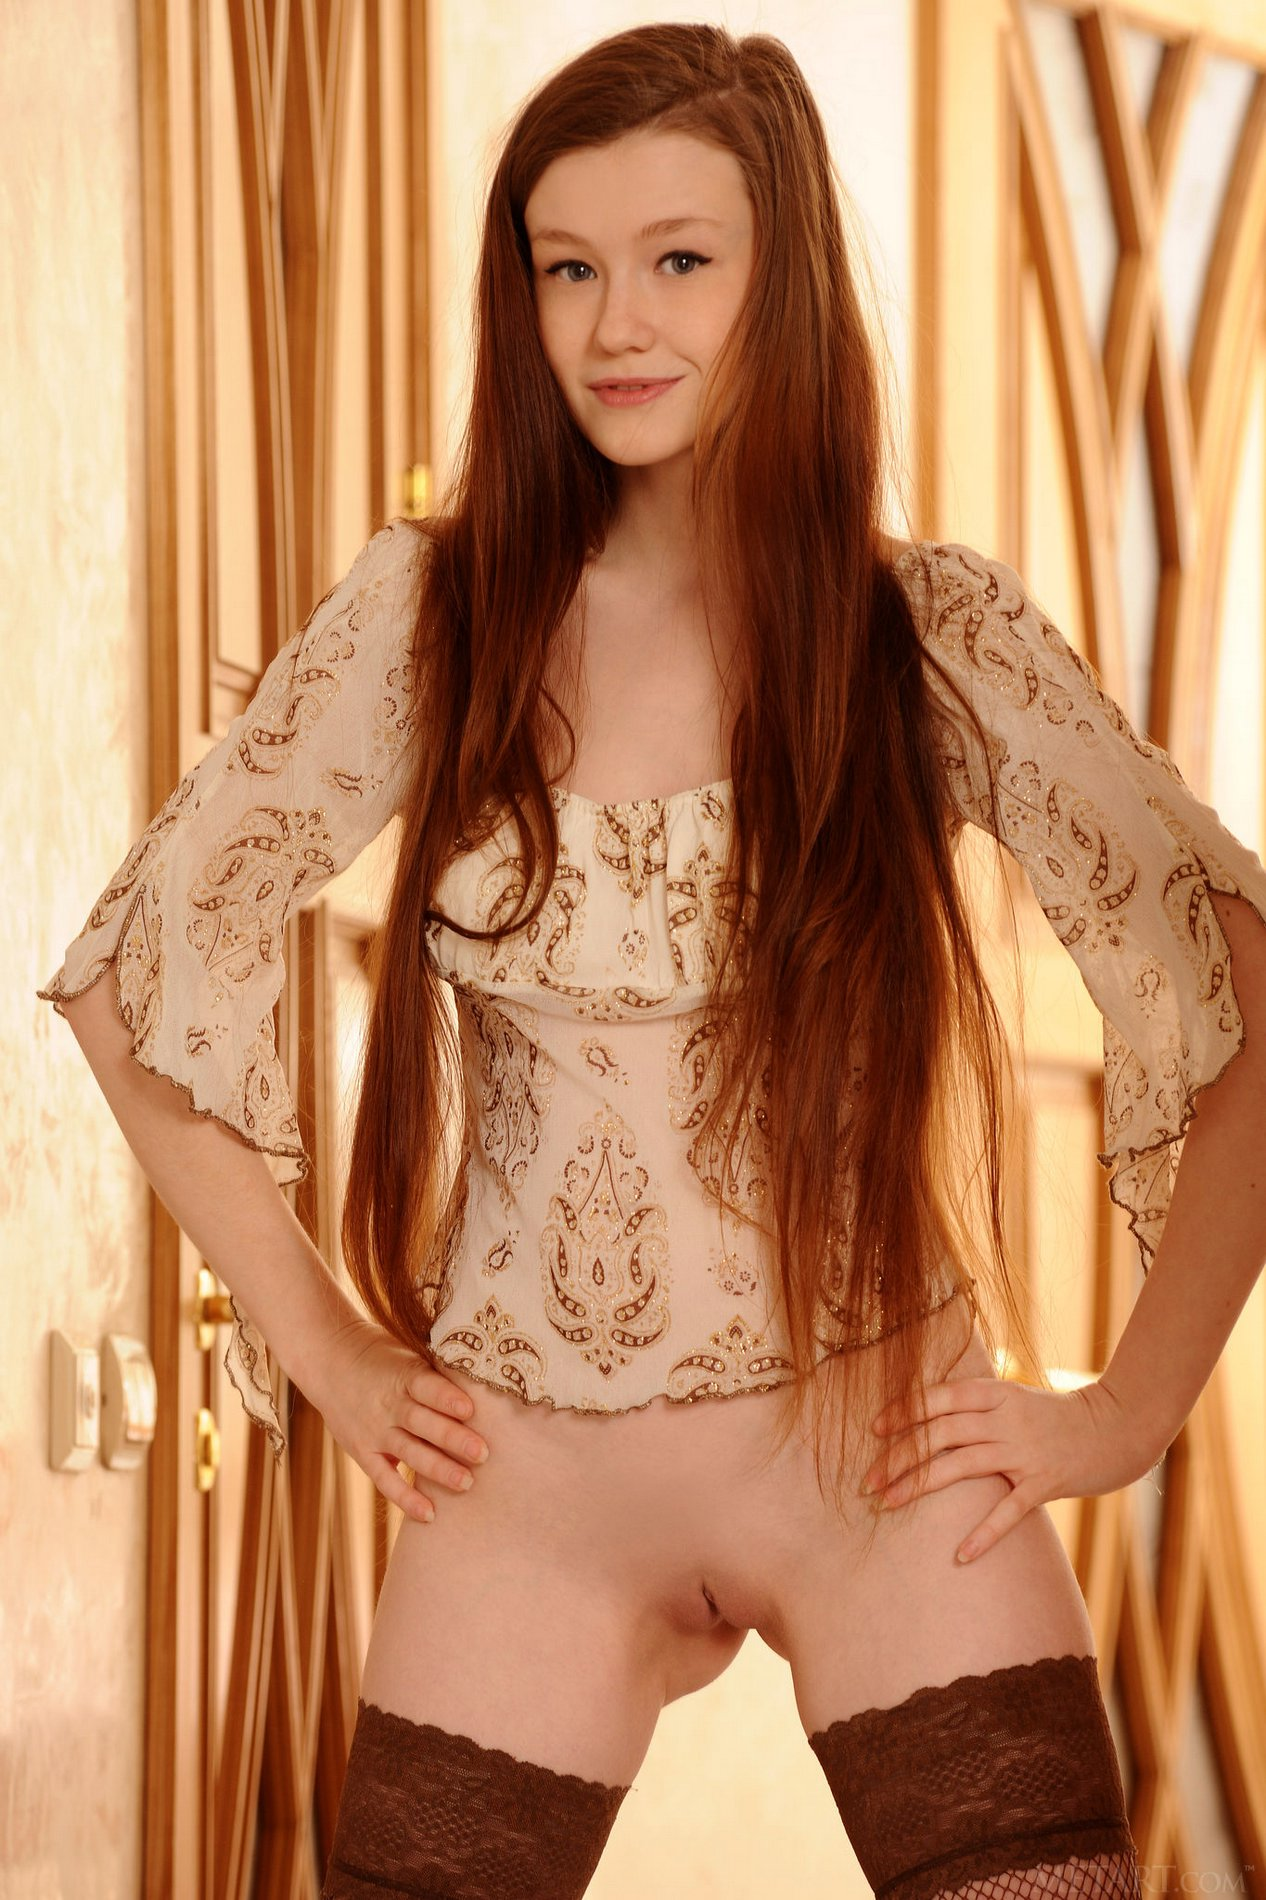 Cute redhead Emily Bloom in sexy stockings poses for camera.